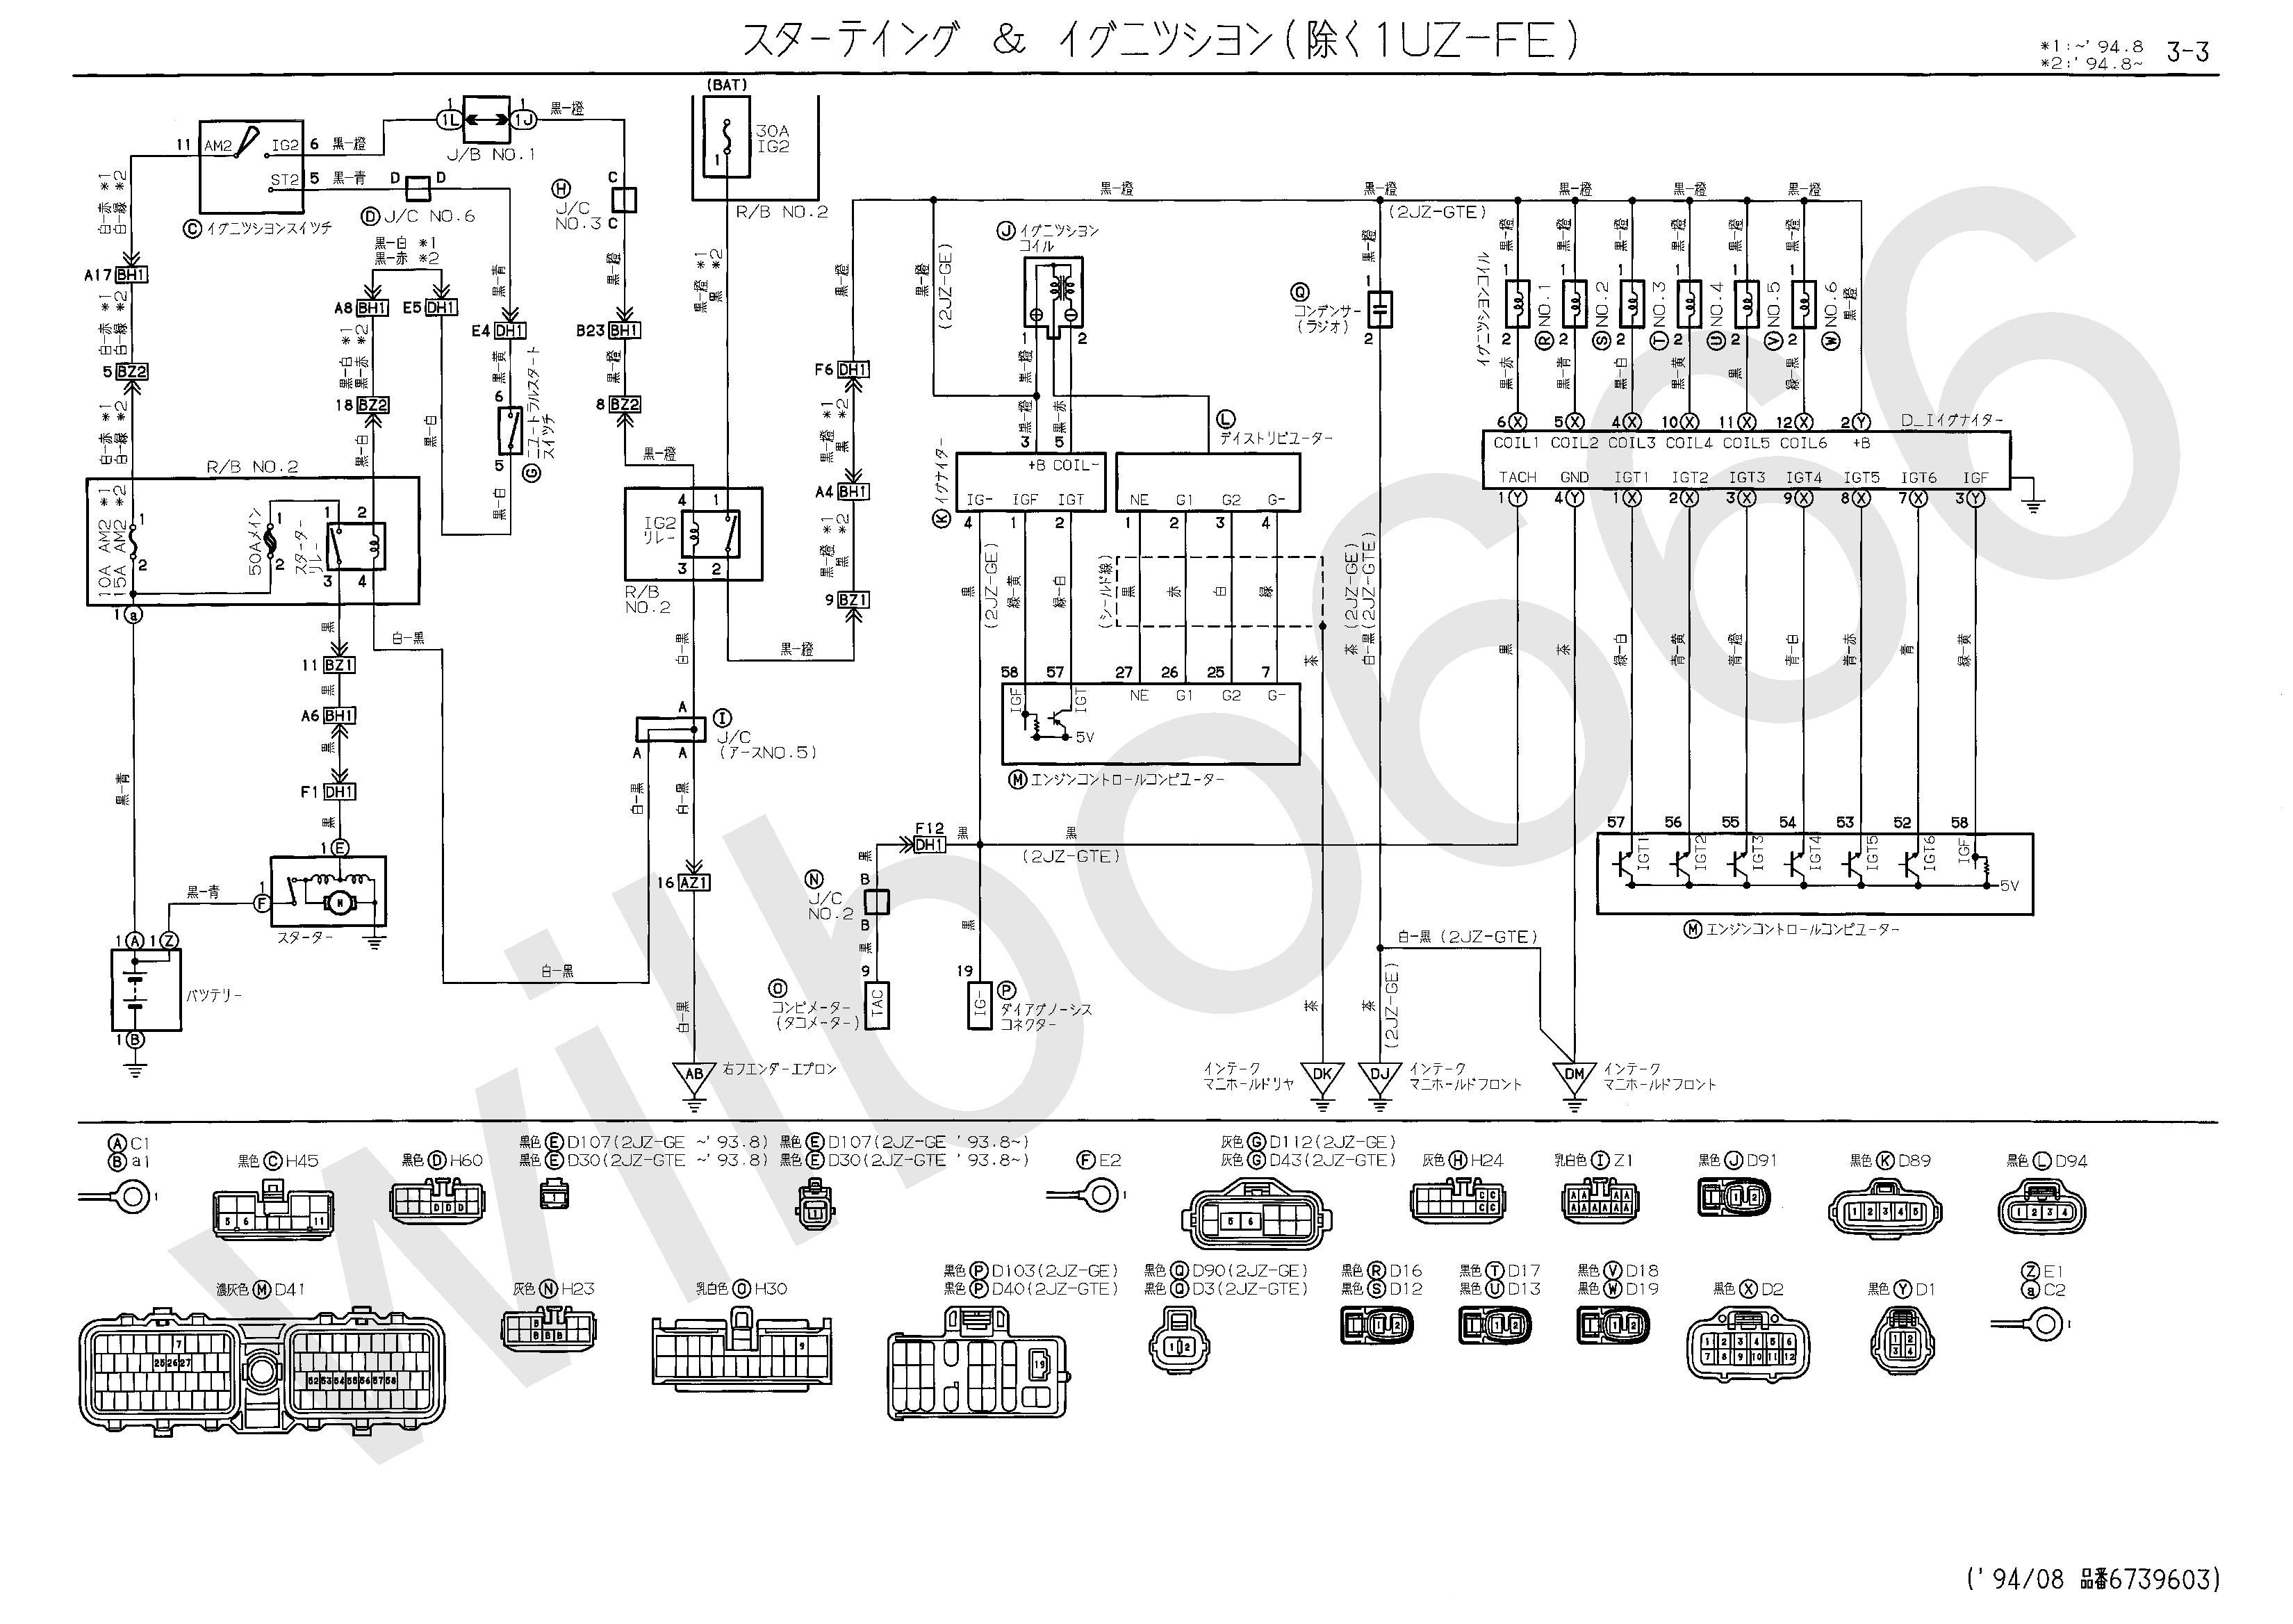 JZS14%23%2C UZS14%23 Electrical Wiring Diagram 6739604 3 3 2jz wiring diagram wiring diagram ground symbol \u2022 wiring diagrams 4.3 Vortec Wiring-Diagram at fashall.co